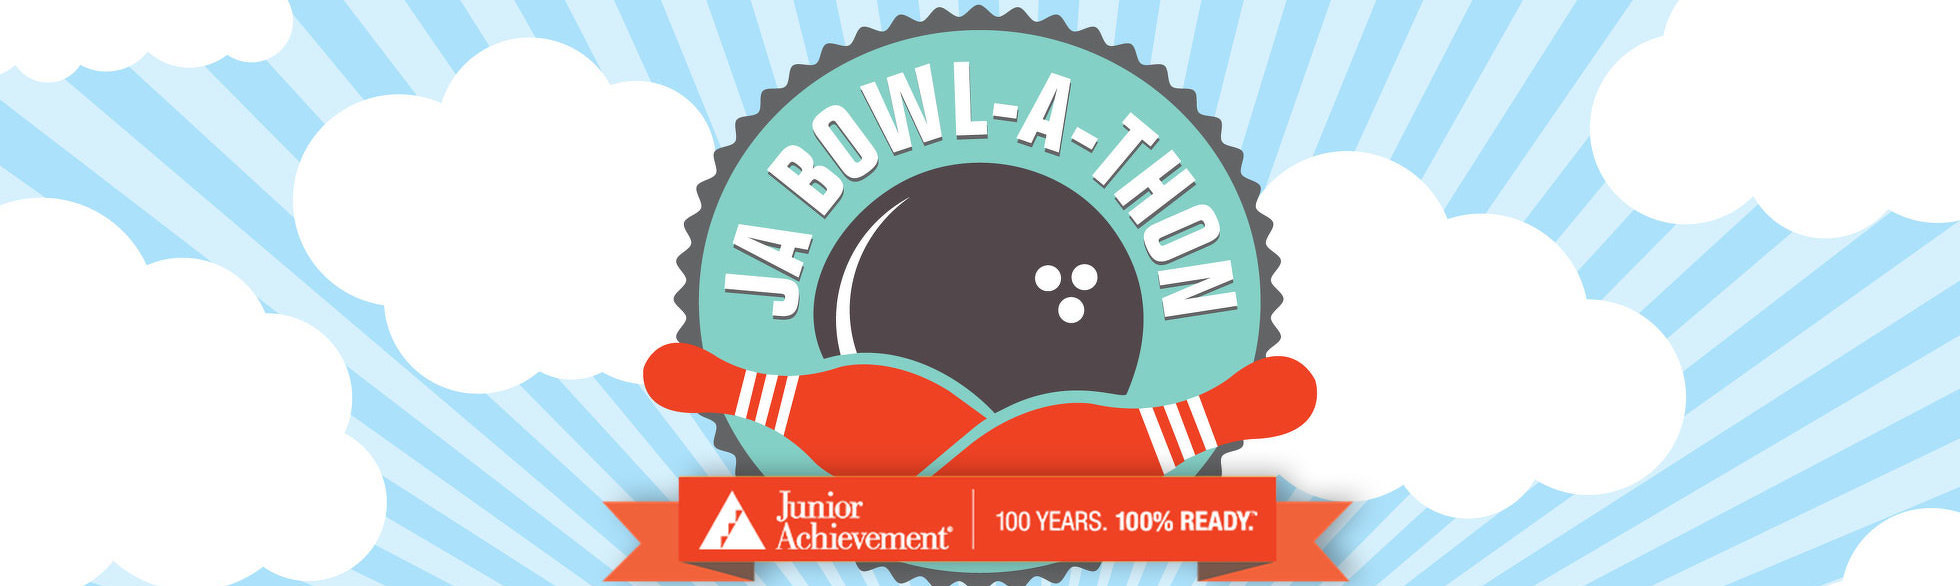 Steamboat Springs JA Bowl-A-Thon 2018